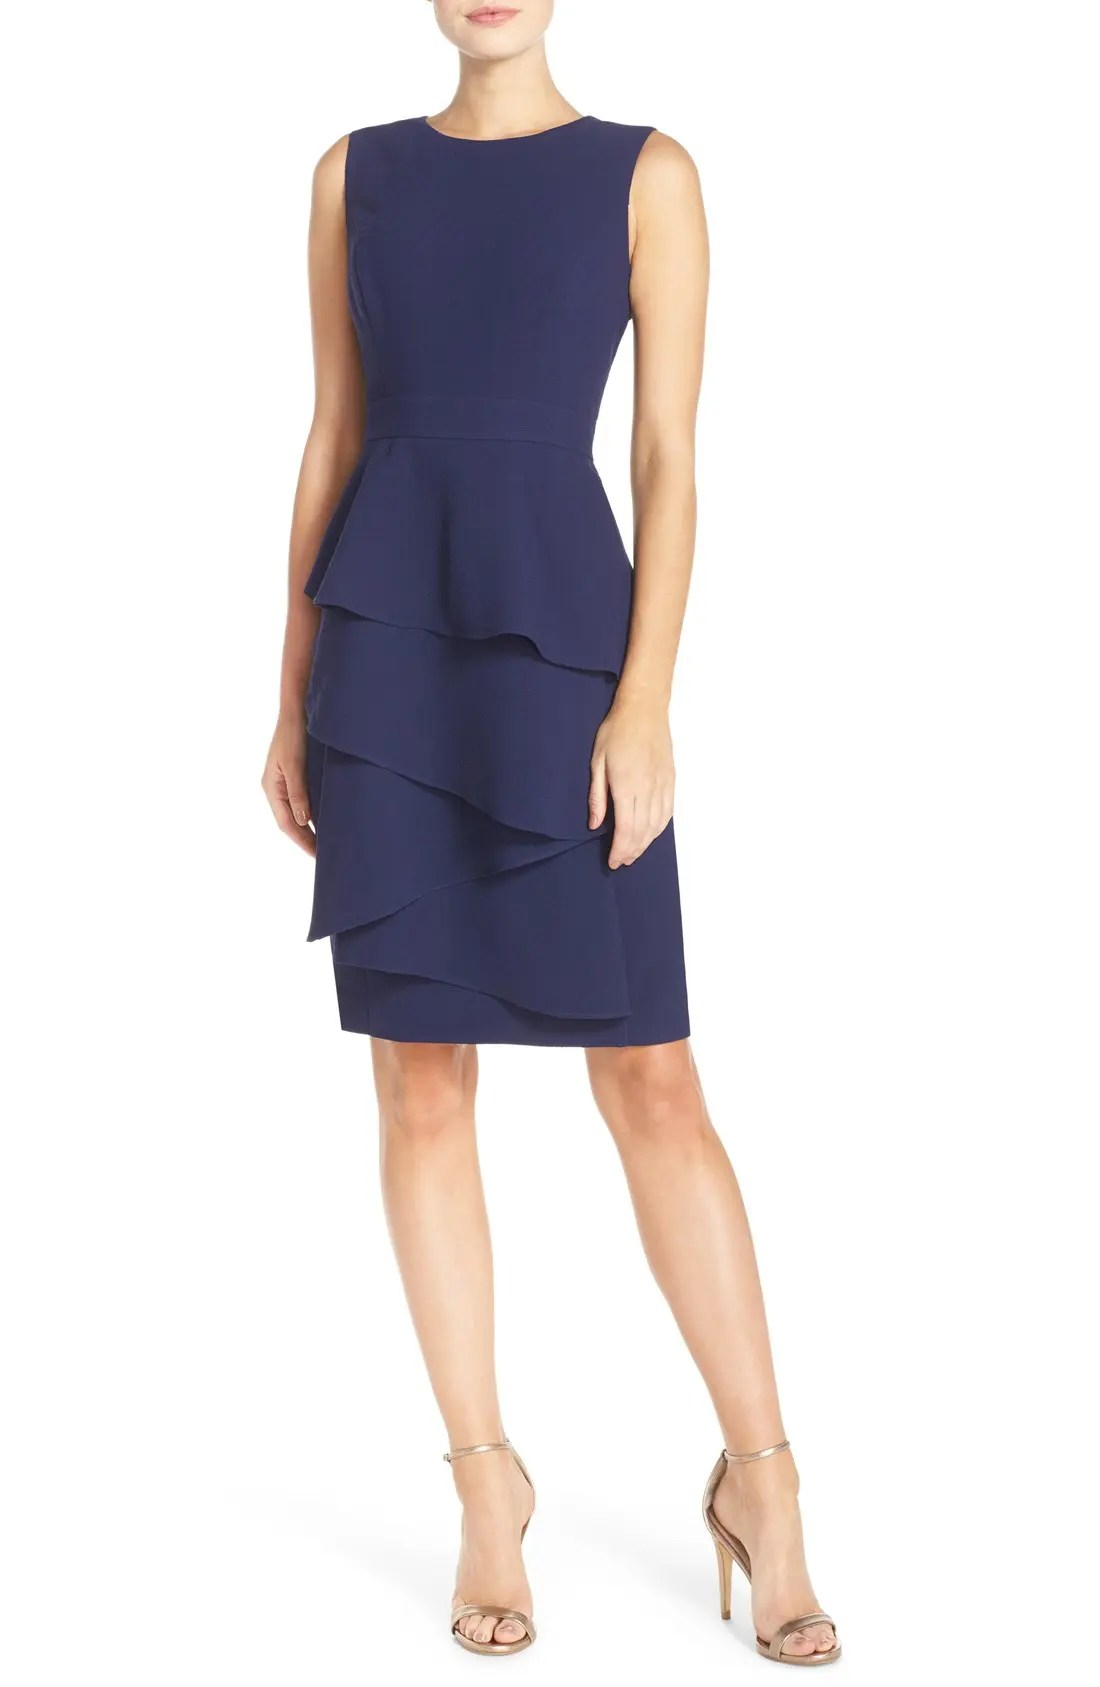 Eliza  ella ruffle cascade crepe sheath dress regular  petite also women  dresses nordstrom rh shoprdstrom